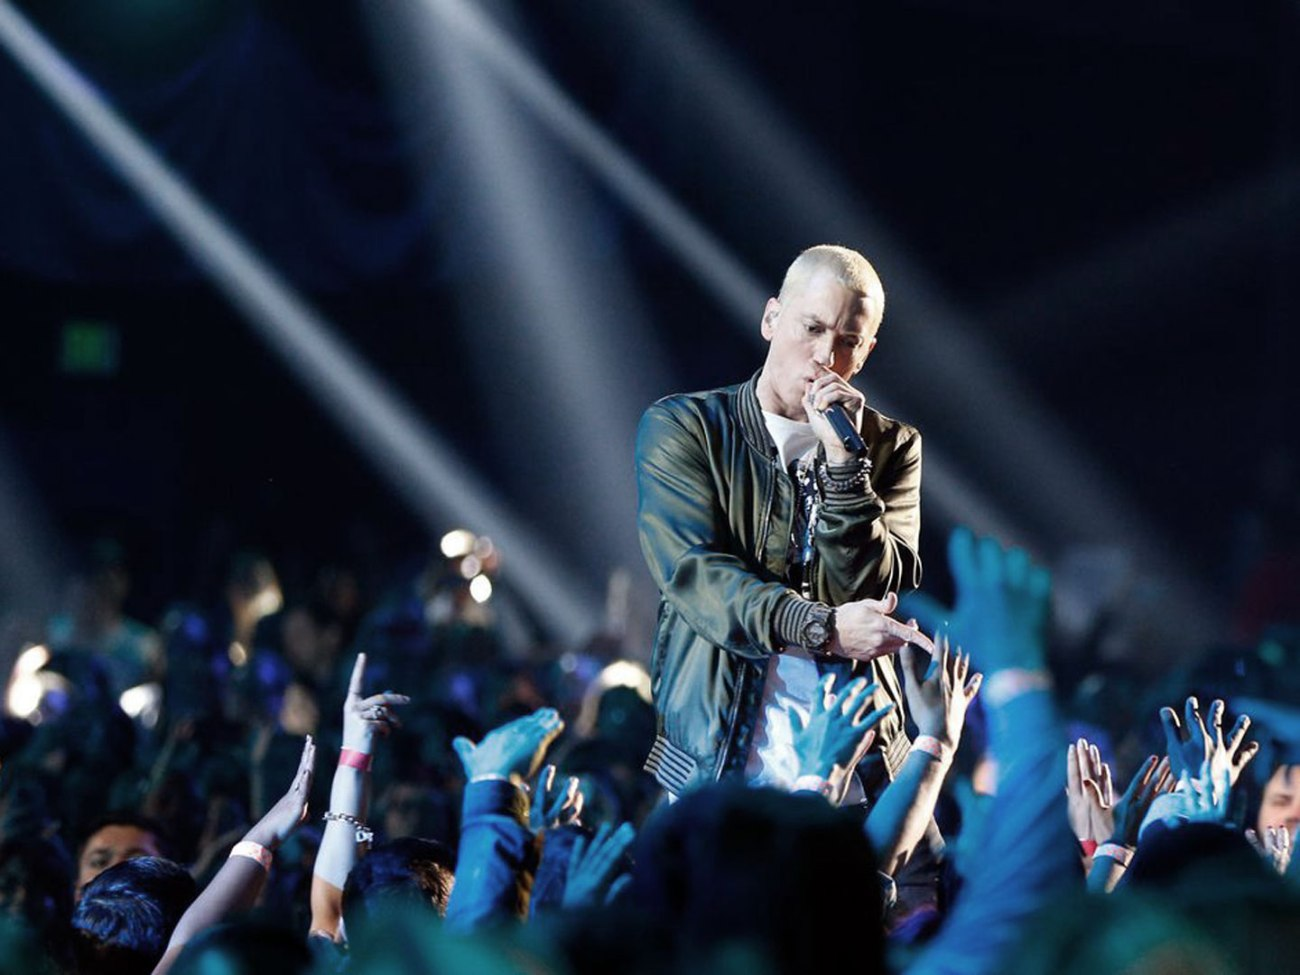 Eminem performs onstage at the 2014 MTV Movie Awards at Nokia Theatre L.A. Live